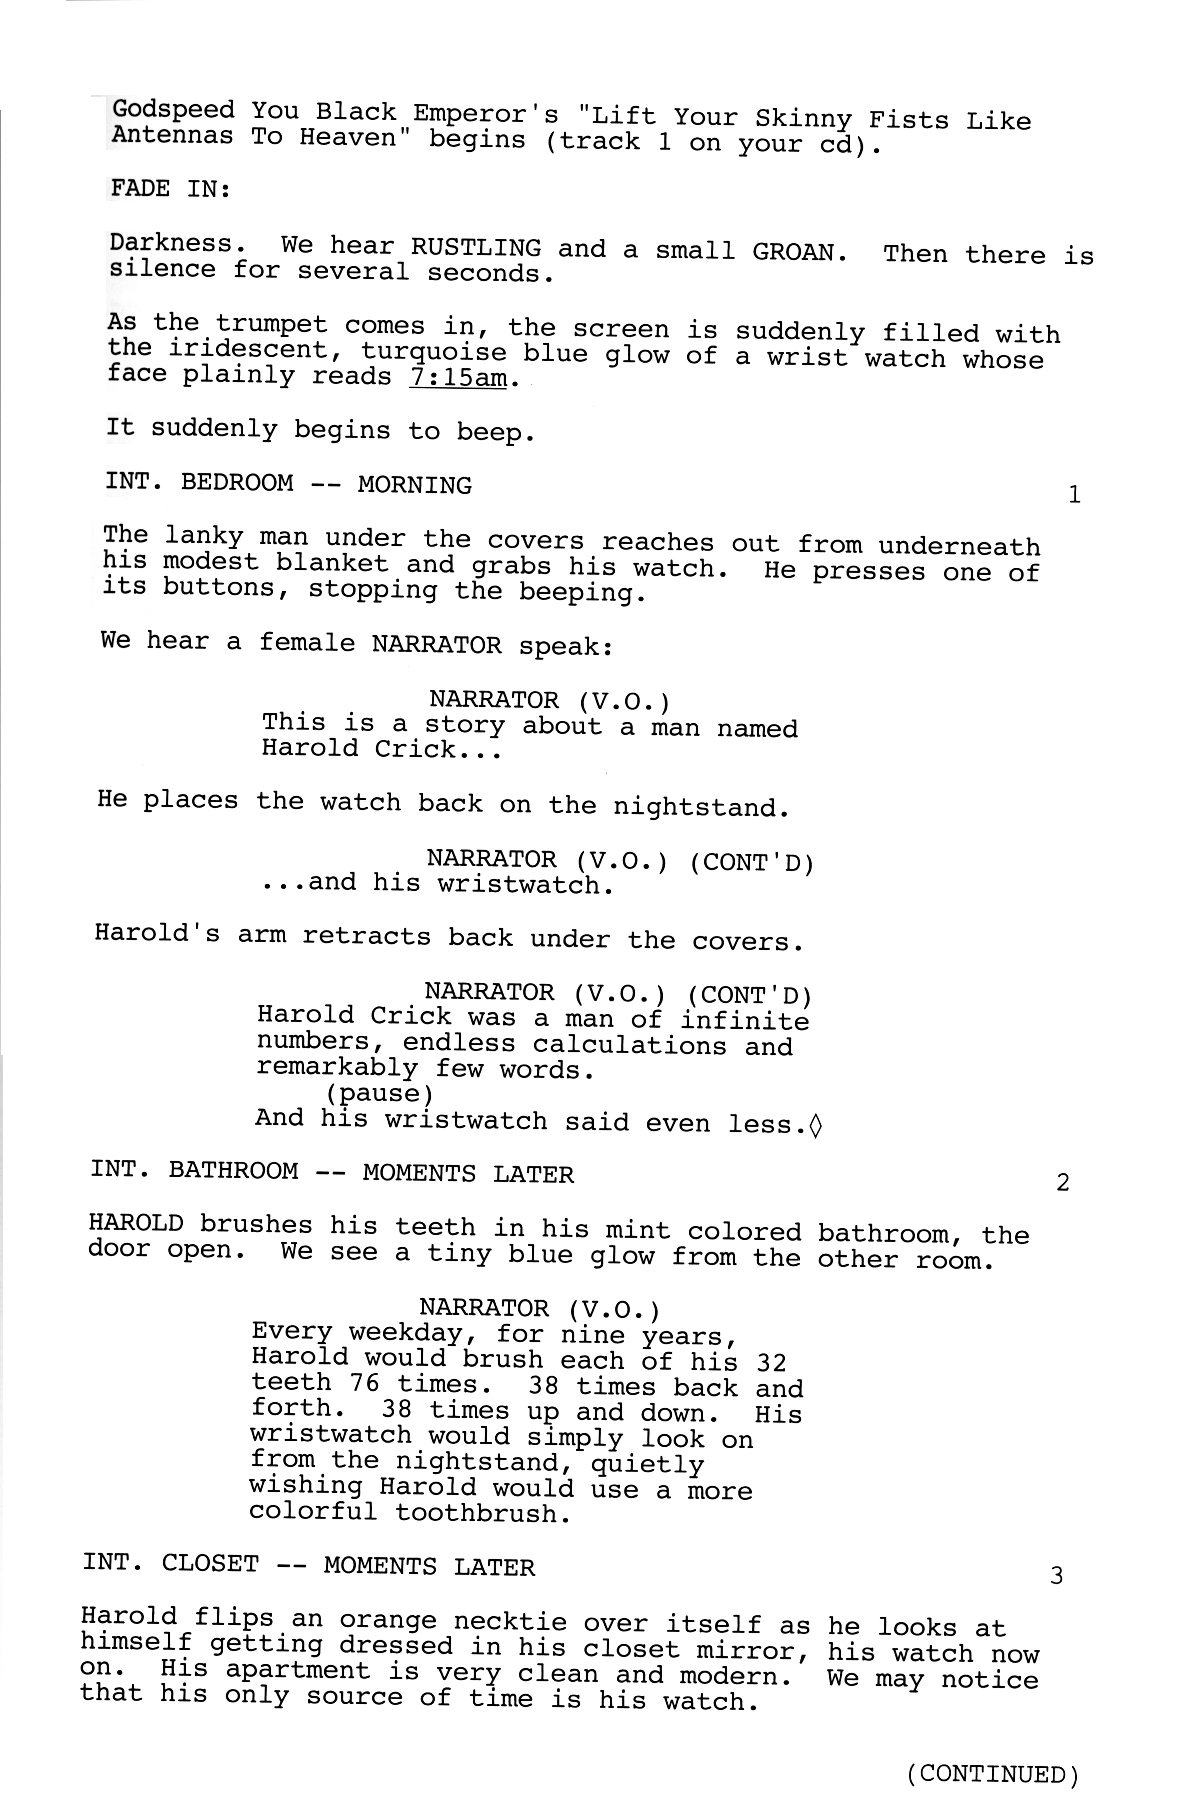 How to write a script and film a movie?